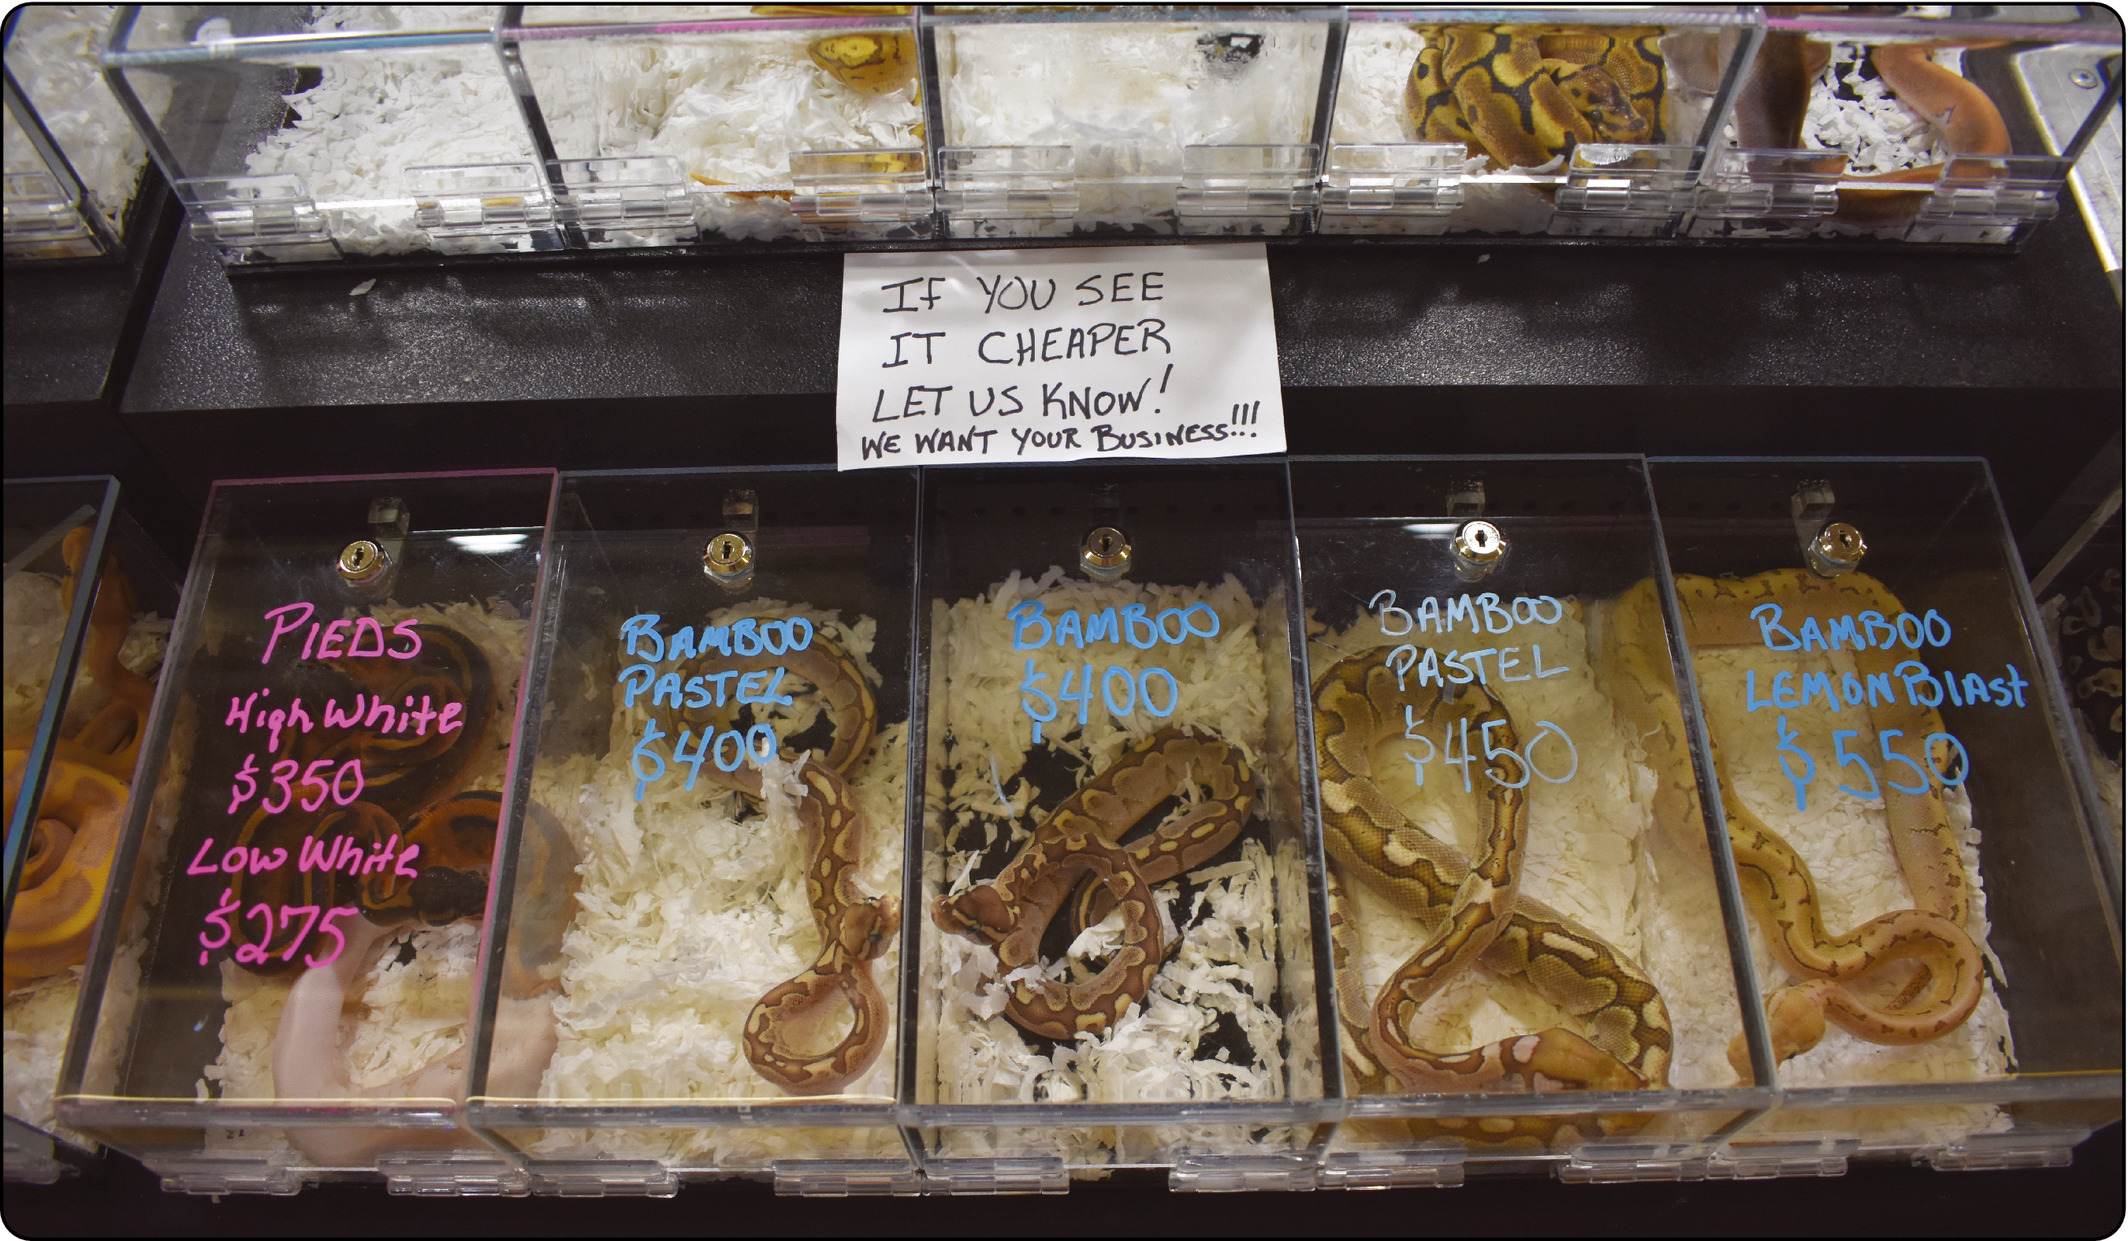 Lockwood et al 2019 image of exotic reptiles being sold at an expo